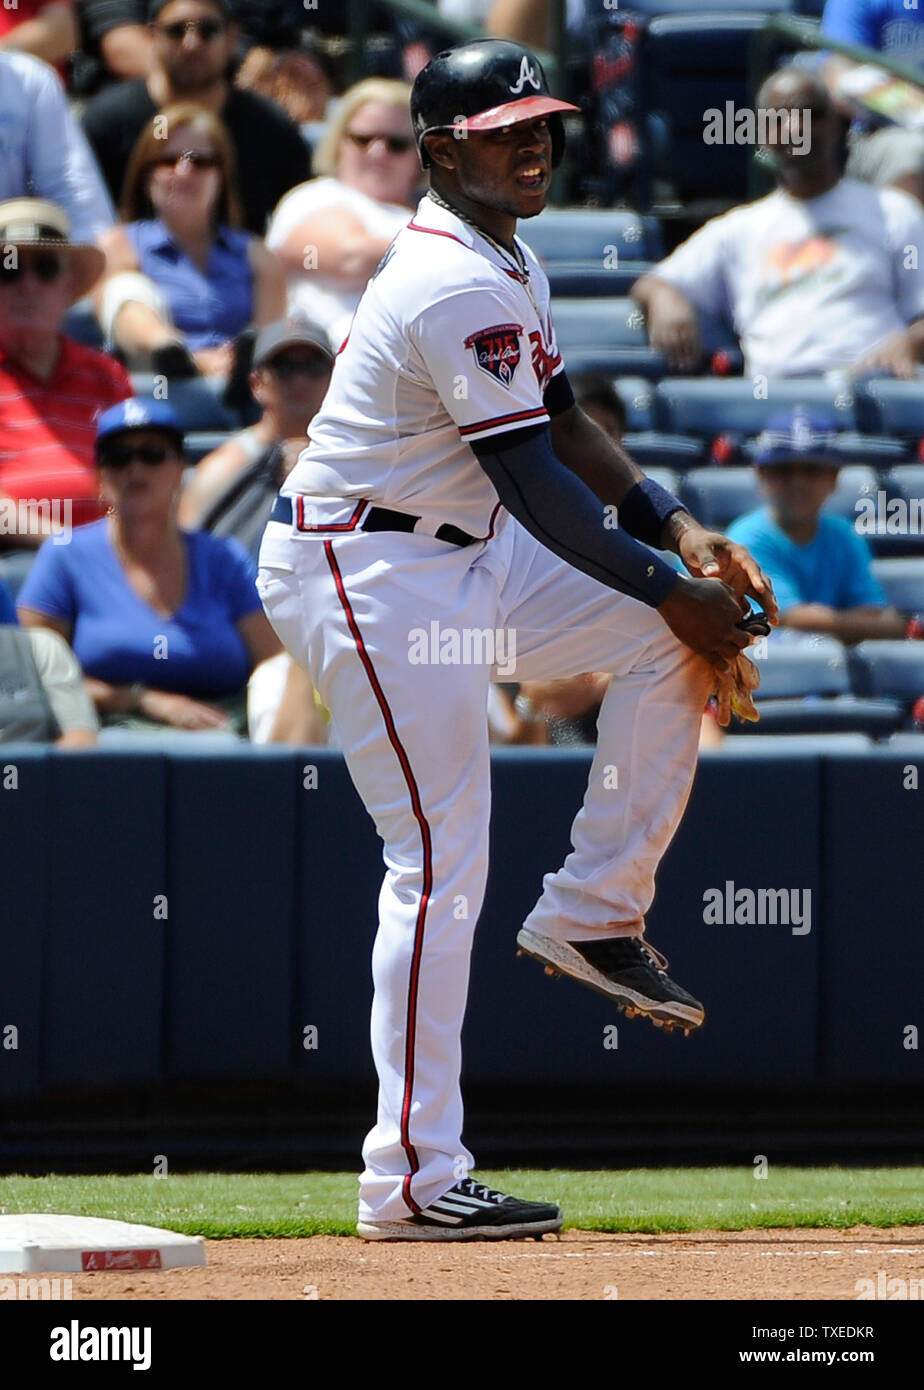 Atlanta Braves left fielder Justin Upton massages his left knee after sliding into third base against the Los Angeles Dodgers before leaving the game with medical personnel in the eighth inning at Turner Field in Atlanta, August 14, 2014. UPI/David Tulis - Stock Image